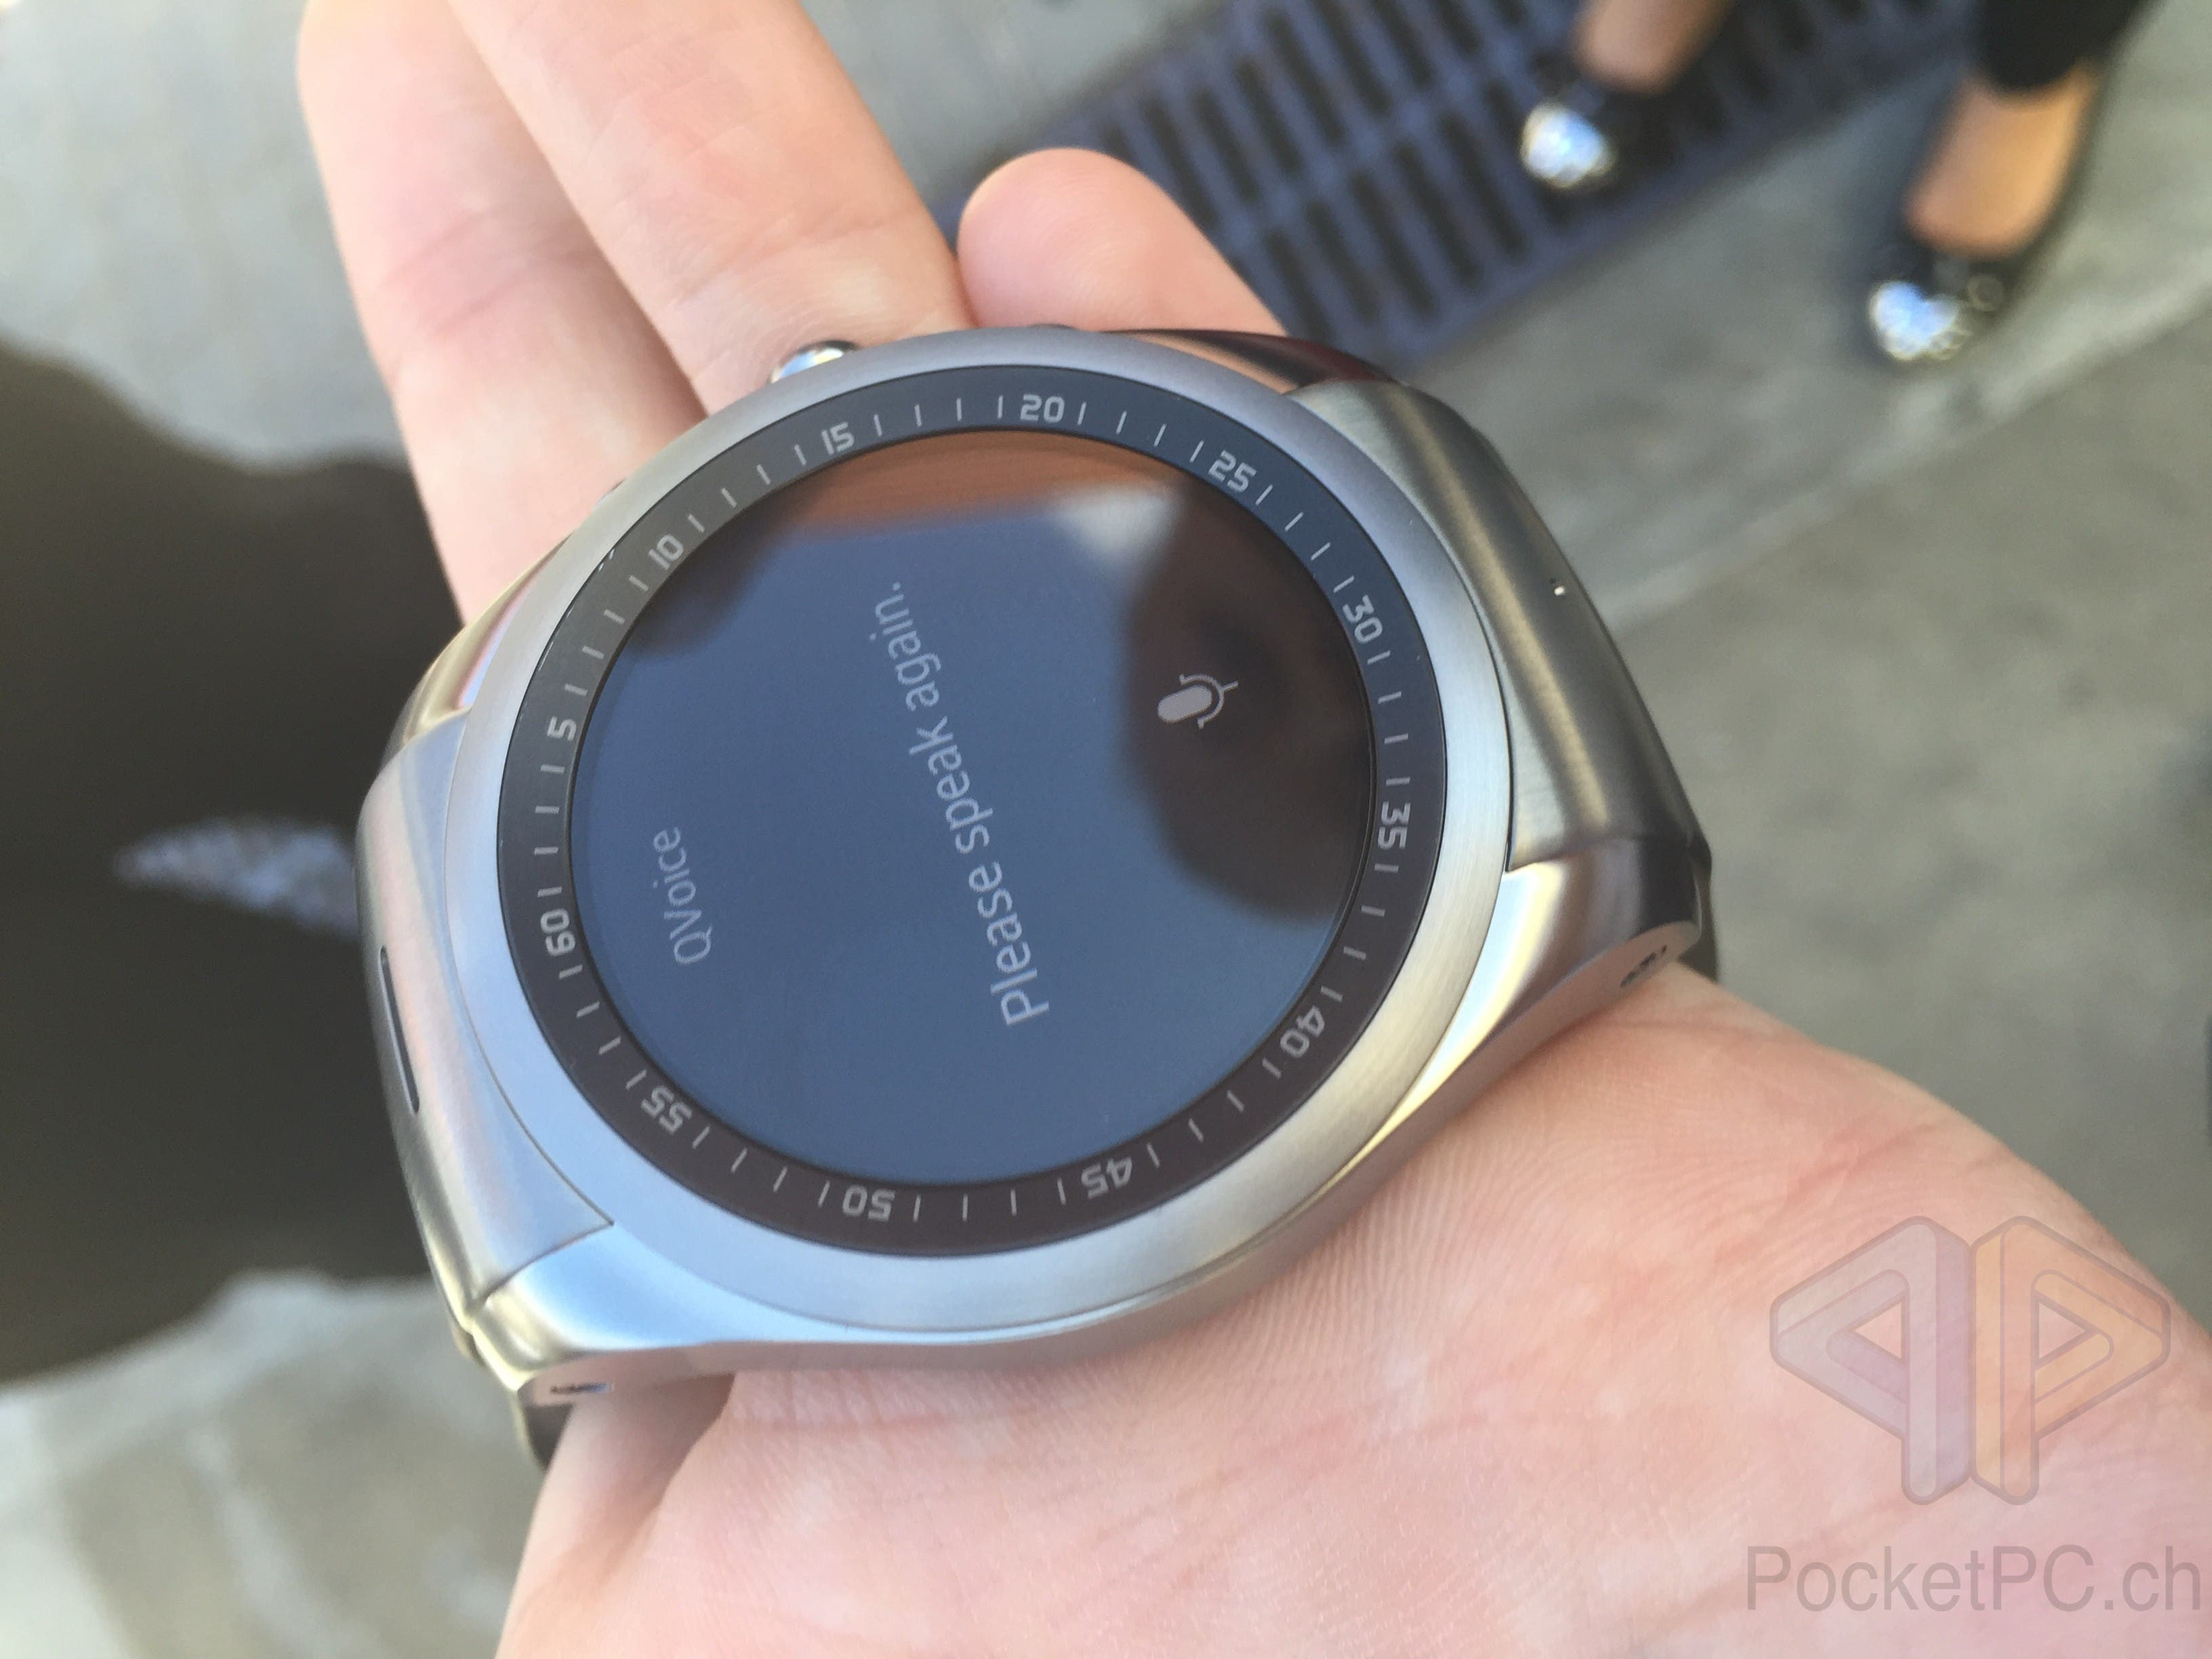 MWC 2015: LG G Watch Urbane LTE im Hands-On Video ...